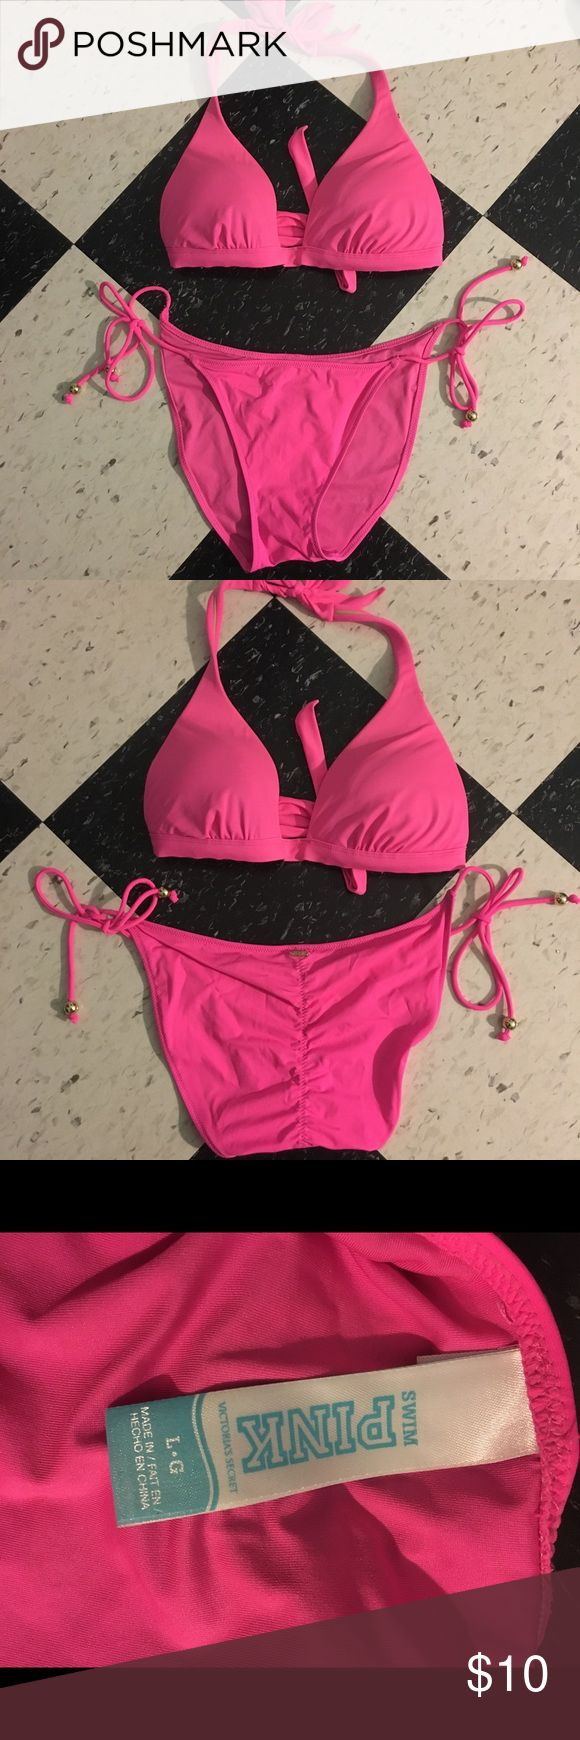 Vs Pink bikini Victoria secret pink hot pink bikini push-up top with removable pads string tie bottom with gathering in back really cute suit in great condition warn onus PINK Victoria's Secret Swim Bikinis